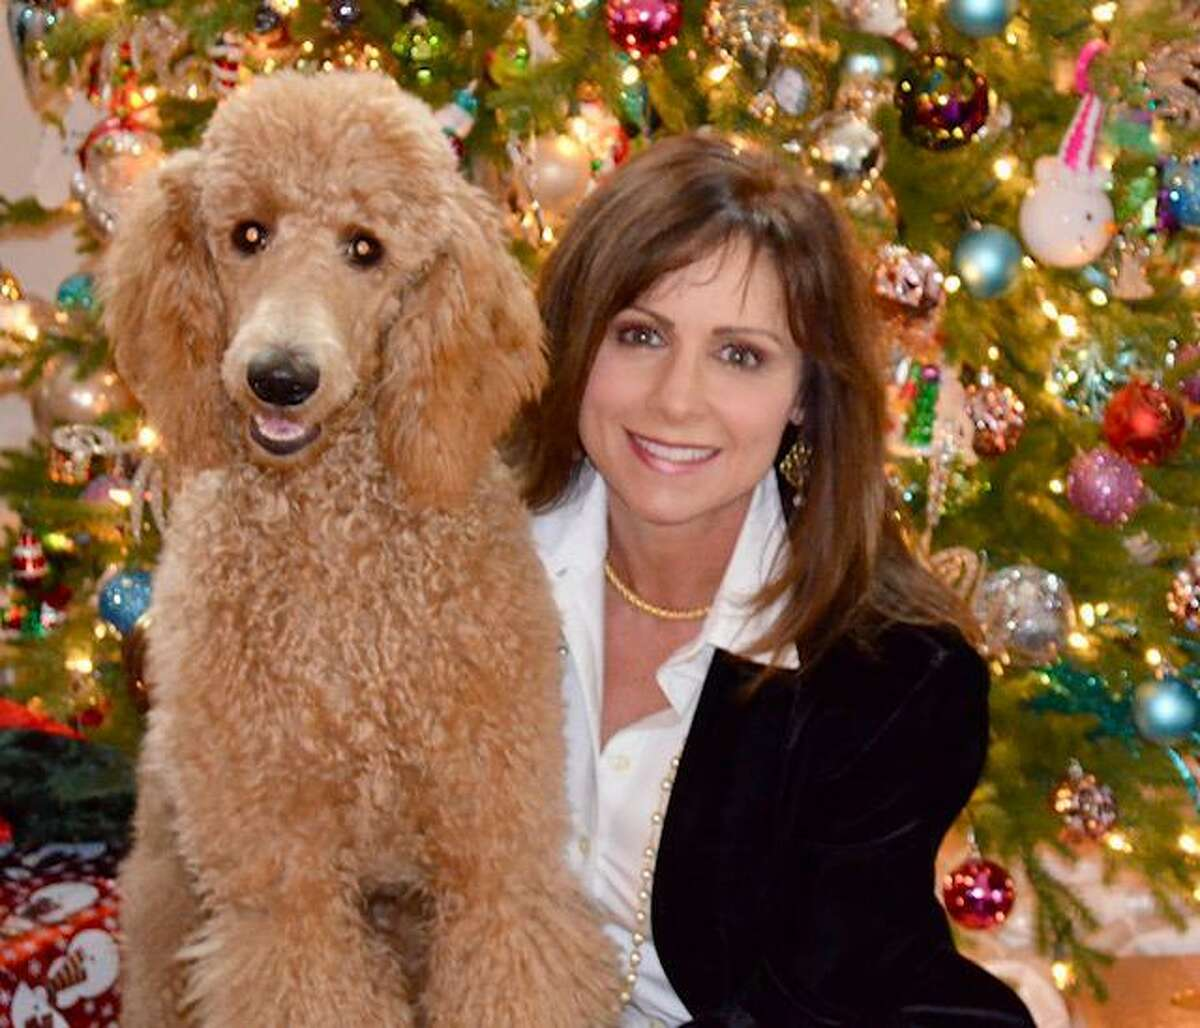 Psychologist Alicia Snow says that pets can help improve mood for people who may be struggling emotionally during the pandemic. Snow was the guest speaker at the Greater Tomball Area Chamber of Commerce Health Wellness Alliance meeting Oct. 27.